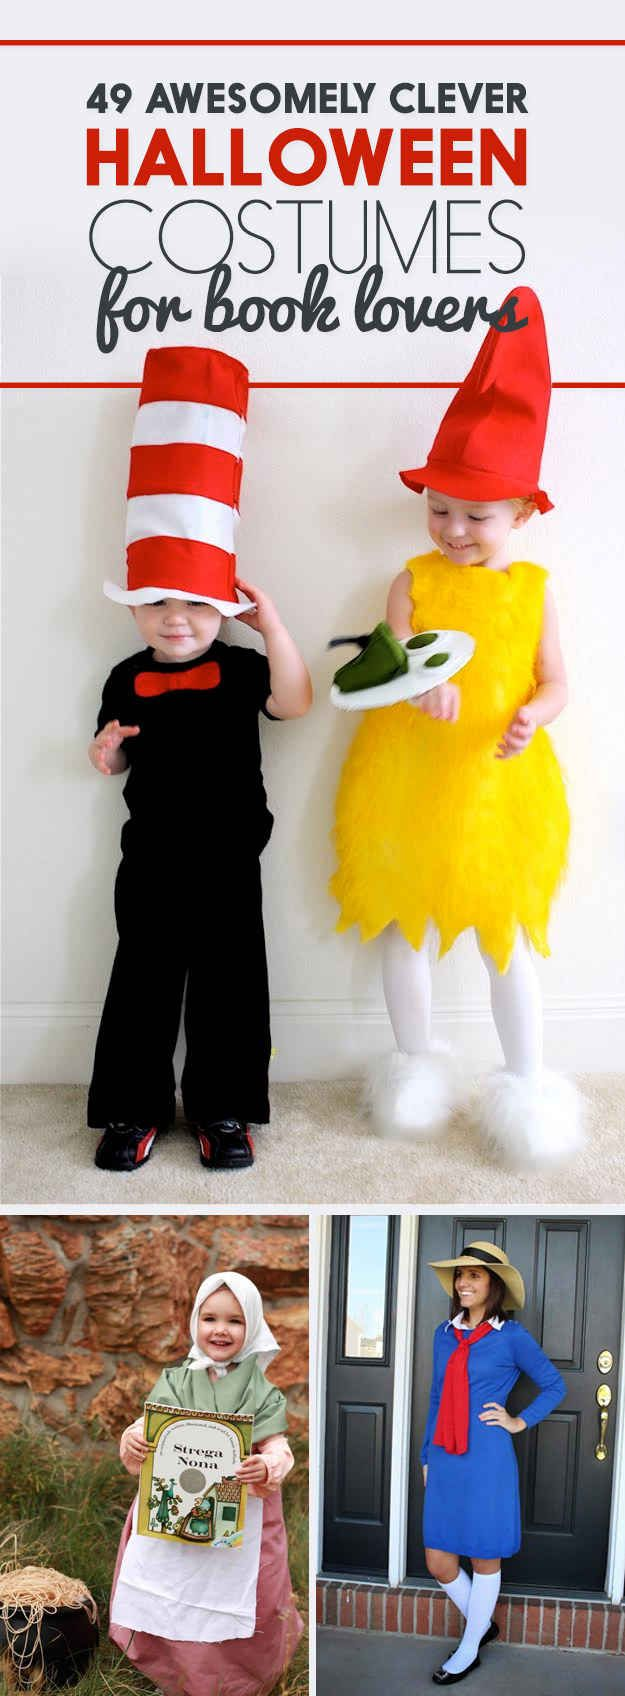 Best 25 literary costumes ideas on pinterest book characters 49 halloween costumes all book lovers will appreciate solutioingenieria Choice Image